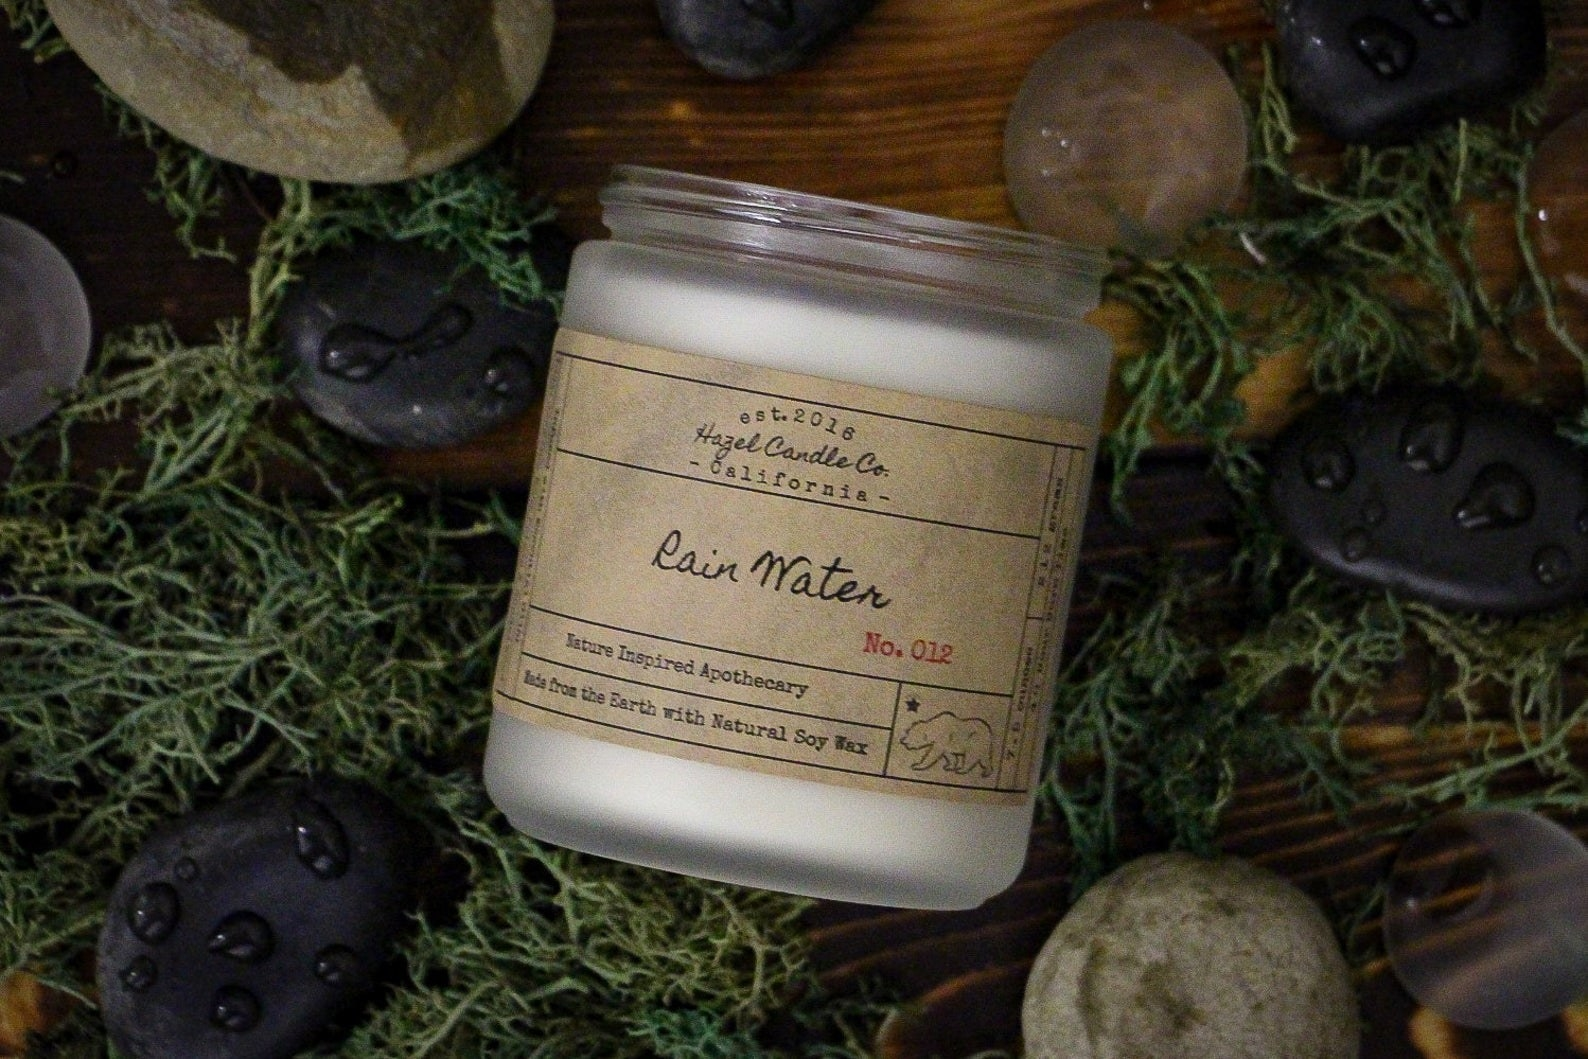 a rain water scented candle